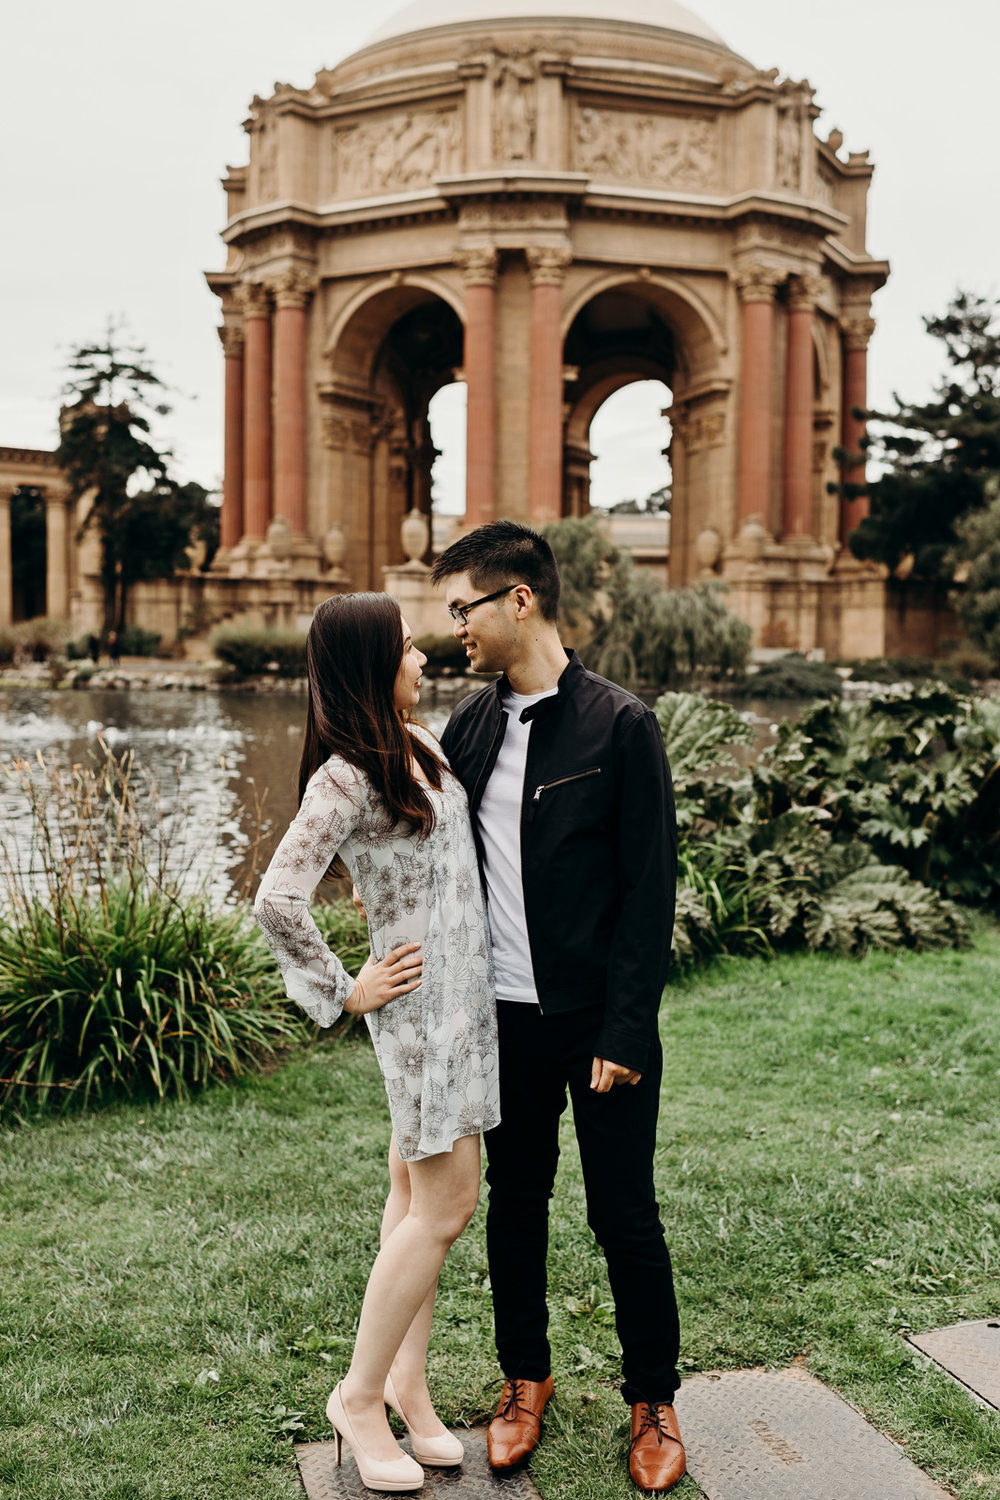 Engaged couple looking at each other at Palace of Fine Arts Theatre.